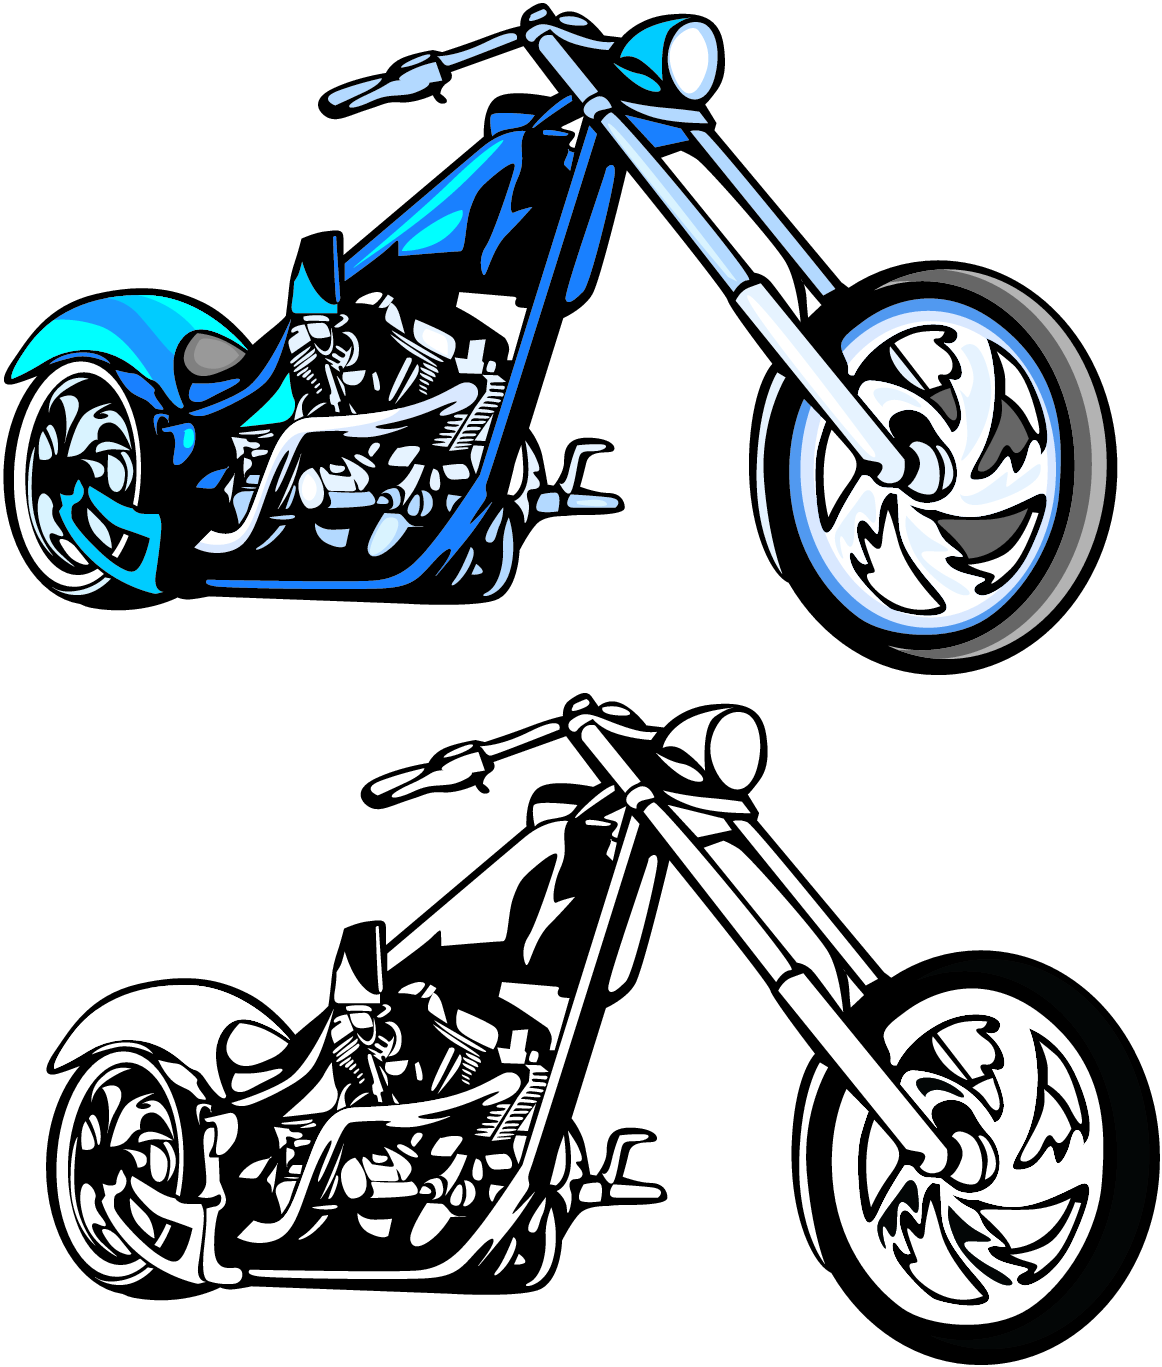 harley davidson silhouette images at getdrawings com free for rh getdrawings com harley davidson clip art design harley davidson clipart motorcycle clipart